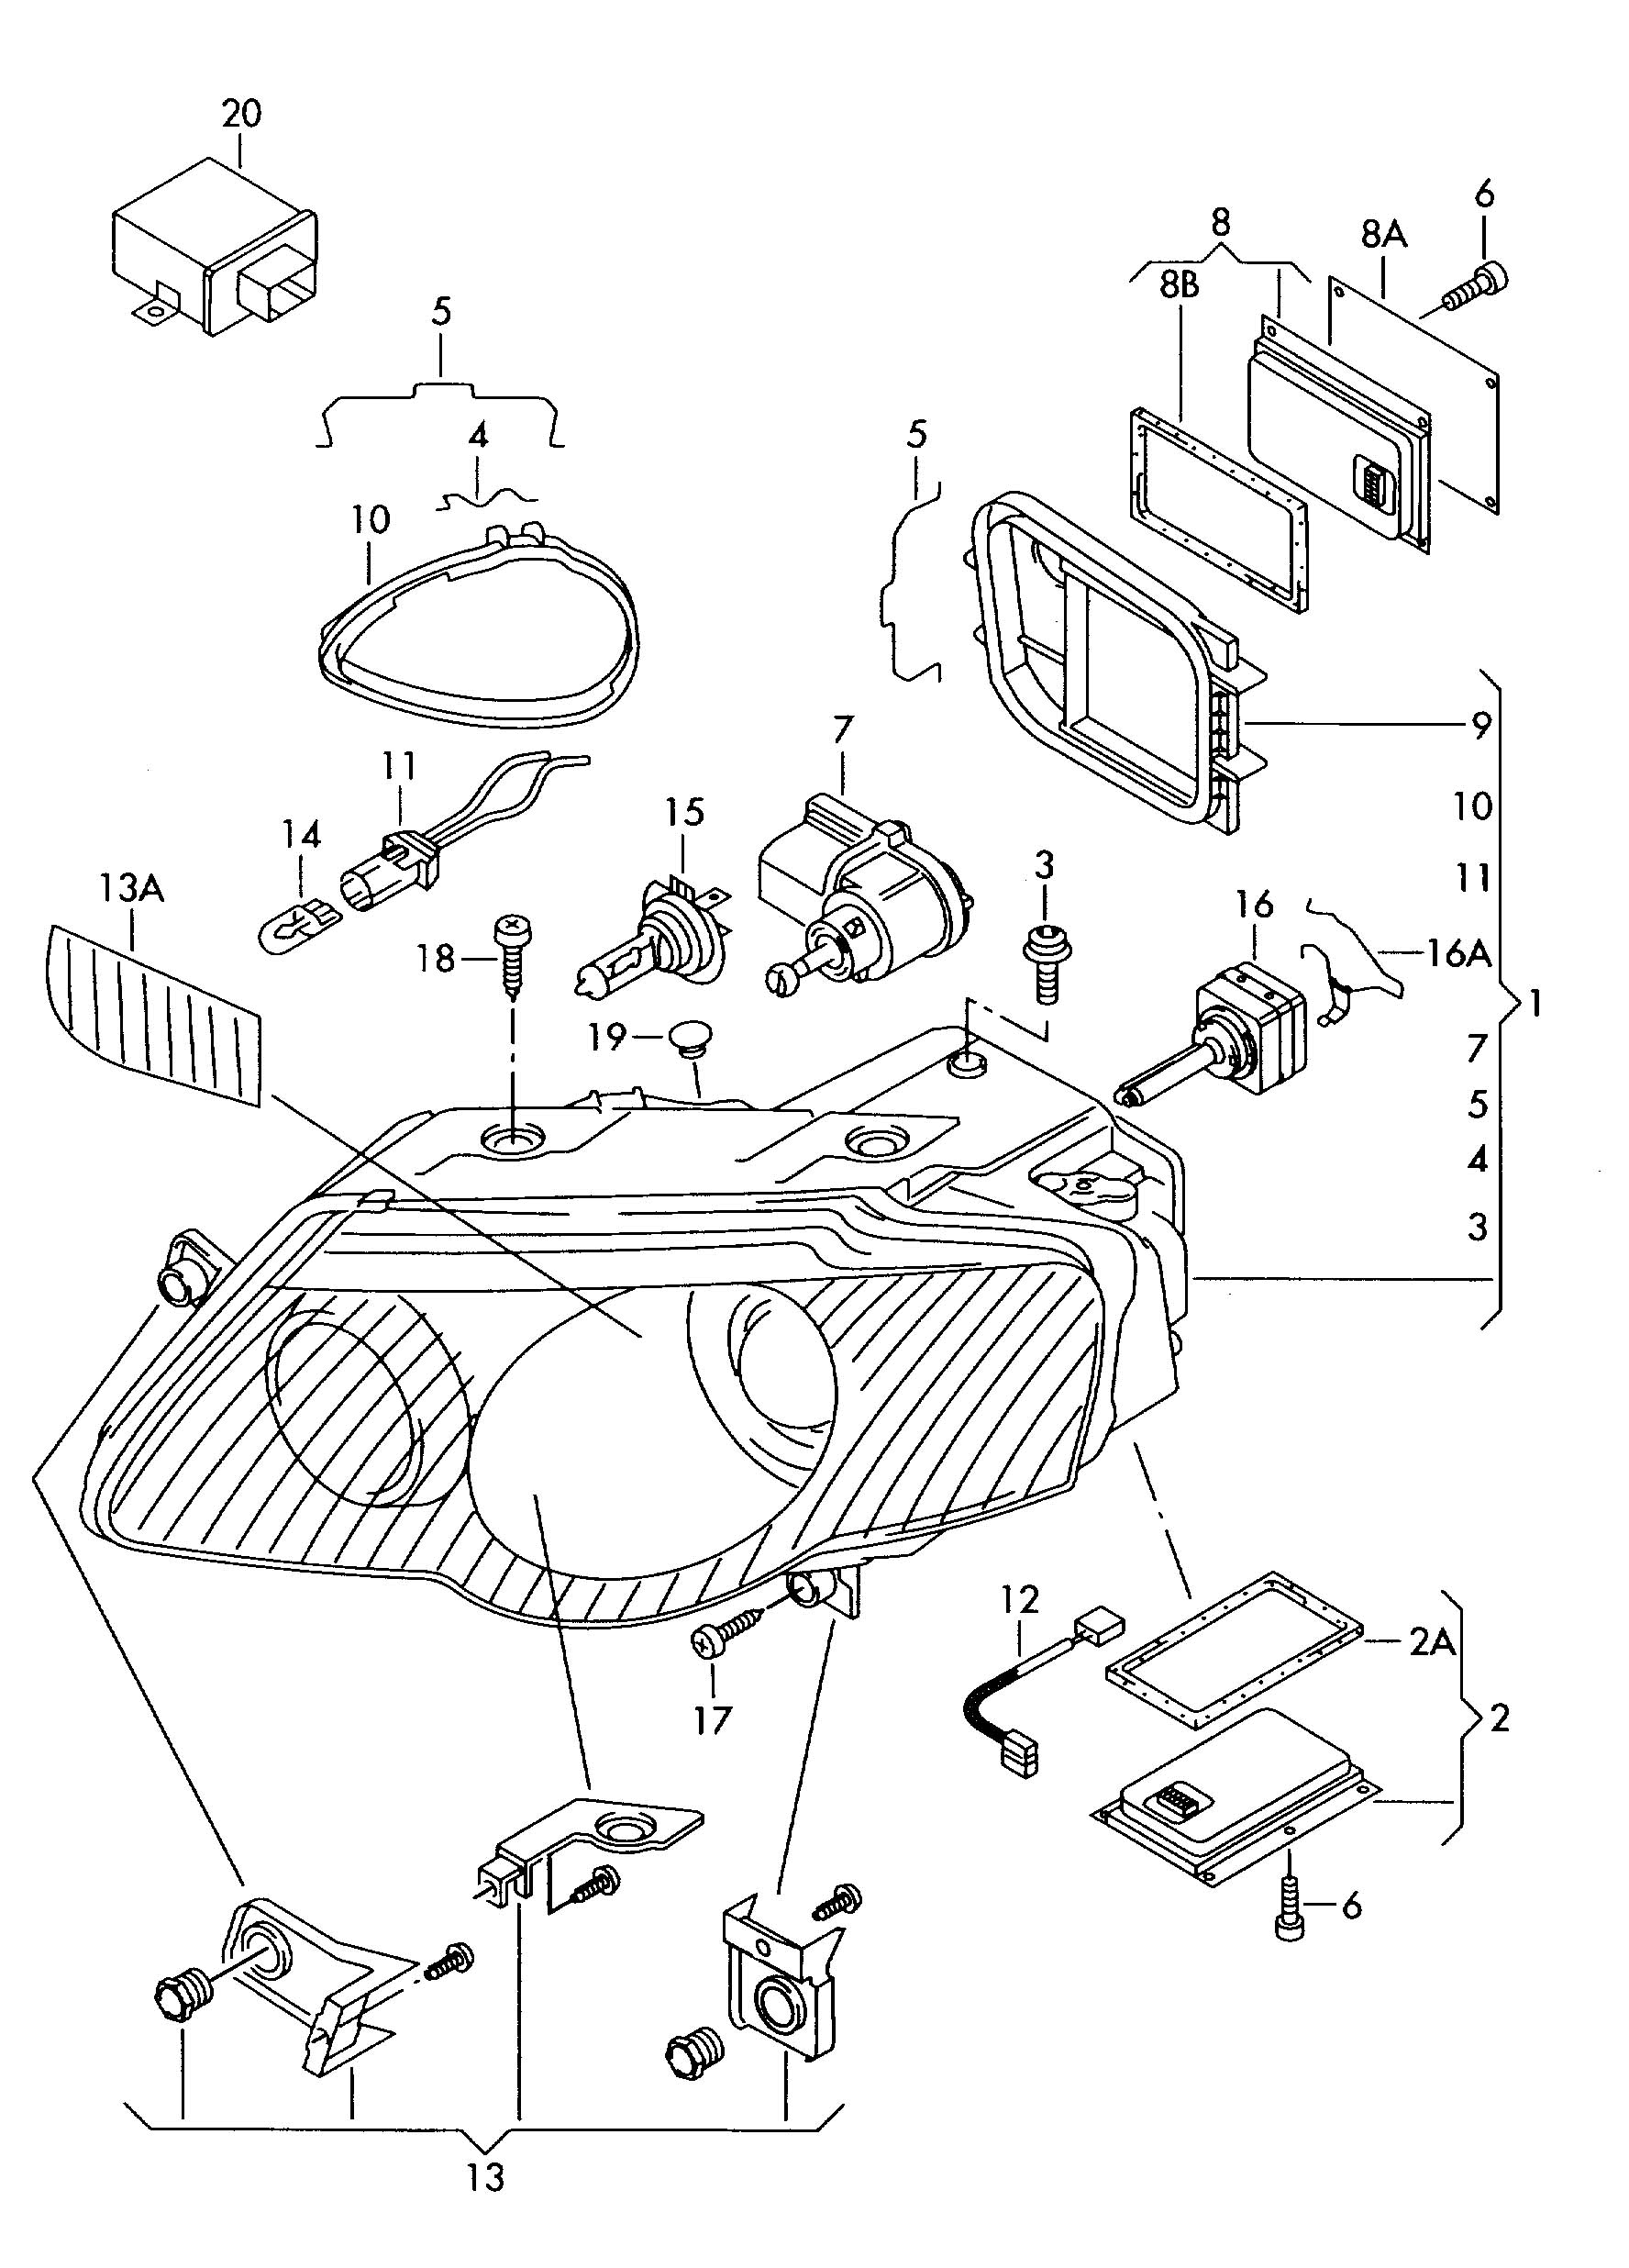 Chevy Cruze Radio Wiring Diagram besides Viewtopic furthermore ShowAssembly together with 8D0941299B likewise Headlight Adjustment Screw. on vw passat headlight adjustment